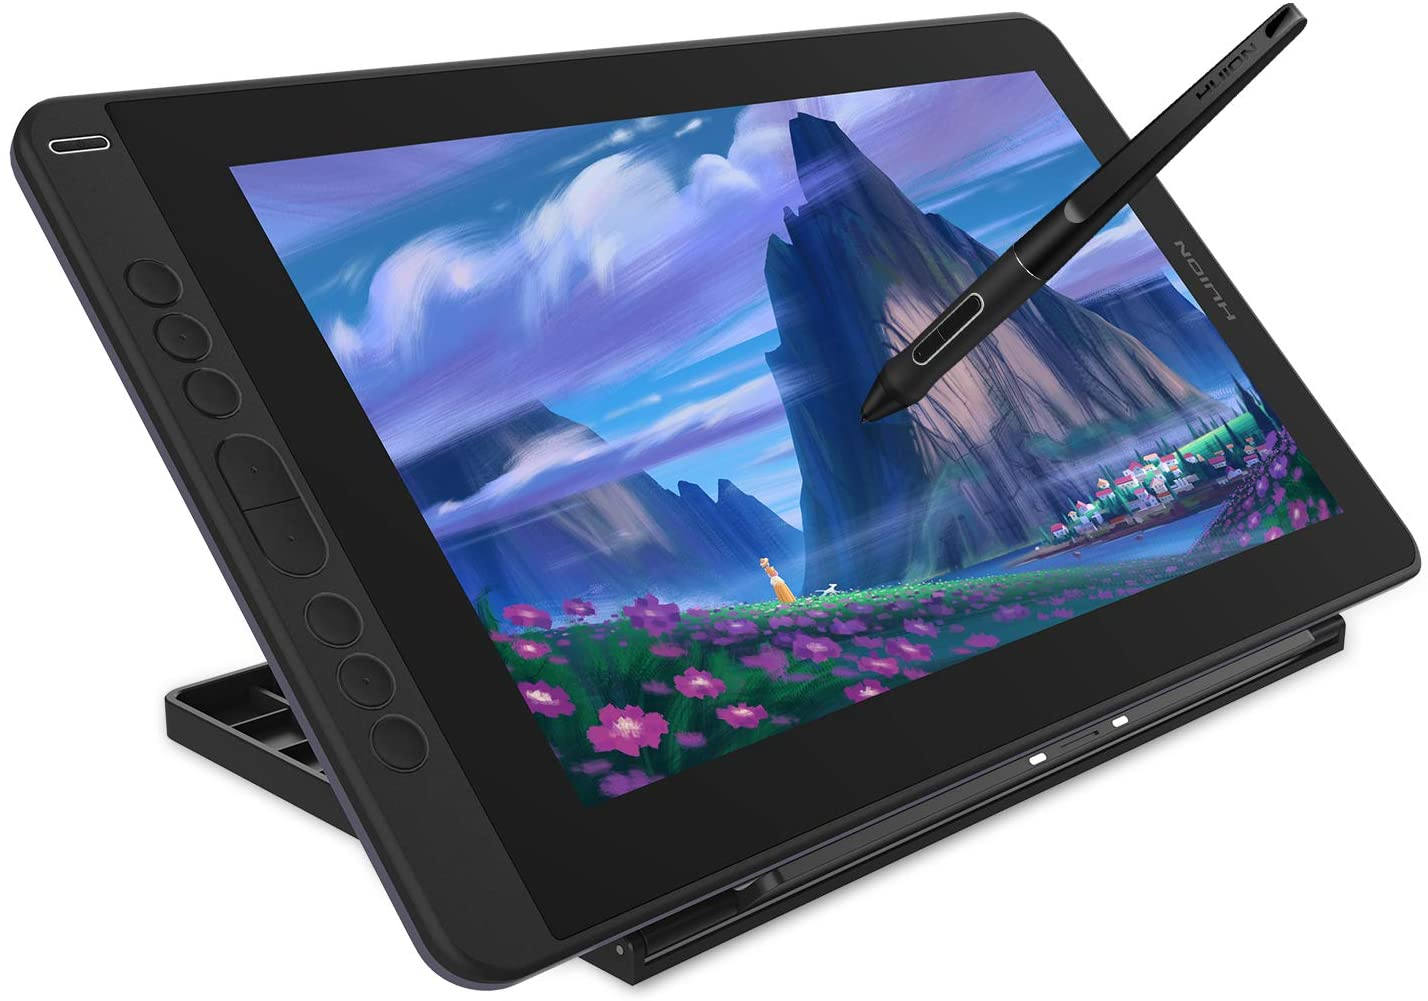 Huion Kamvas 13 Pen Display 2-in-1 Graphics Drawing Tablet with Screen Full-Laminated, Battery-Free Tilt Function 8192 Pen Pressure and 8 Shortcut Keys, Stand Included, Purple